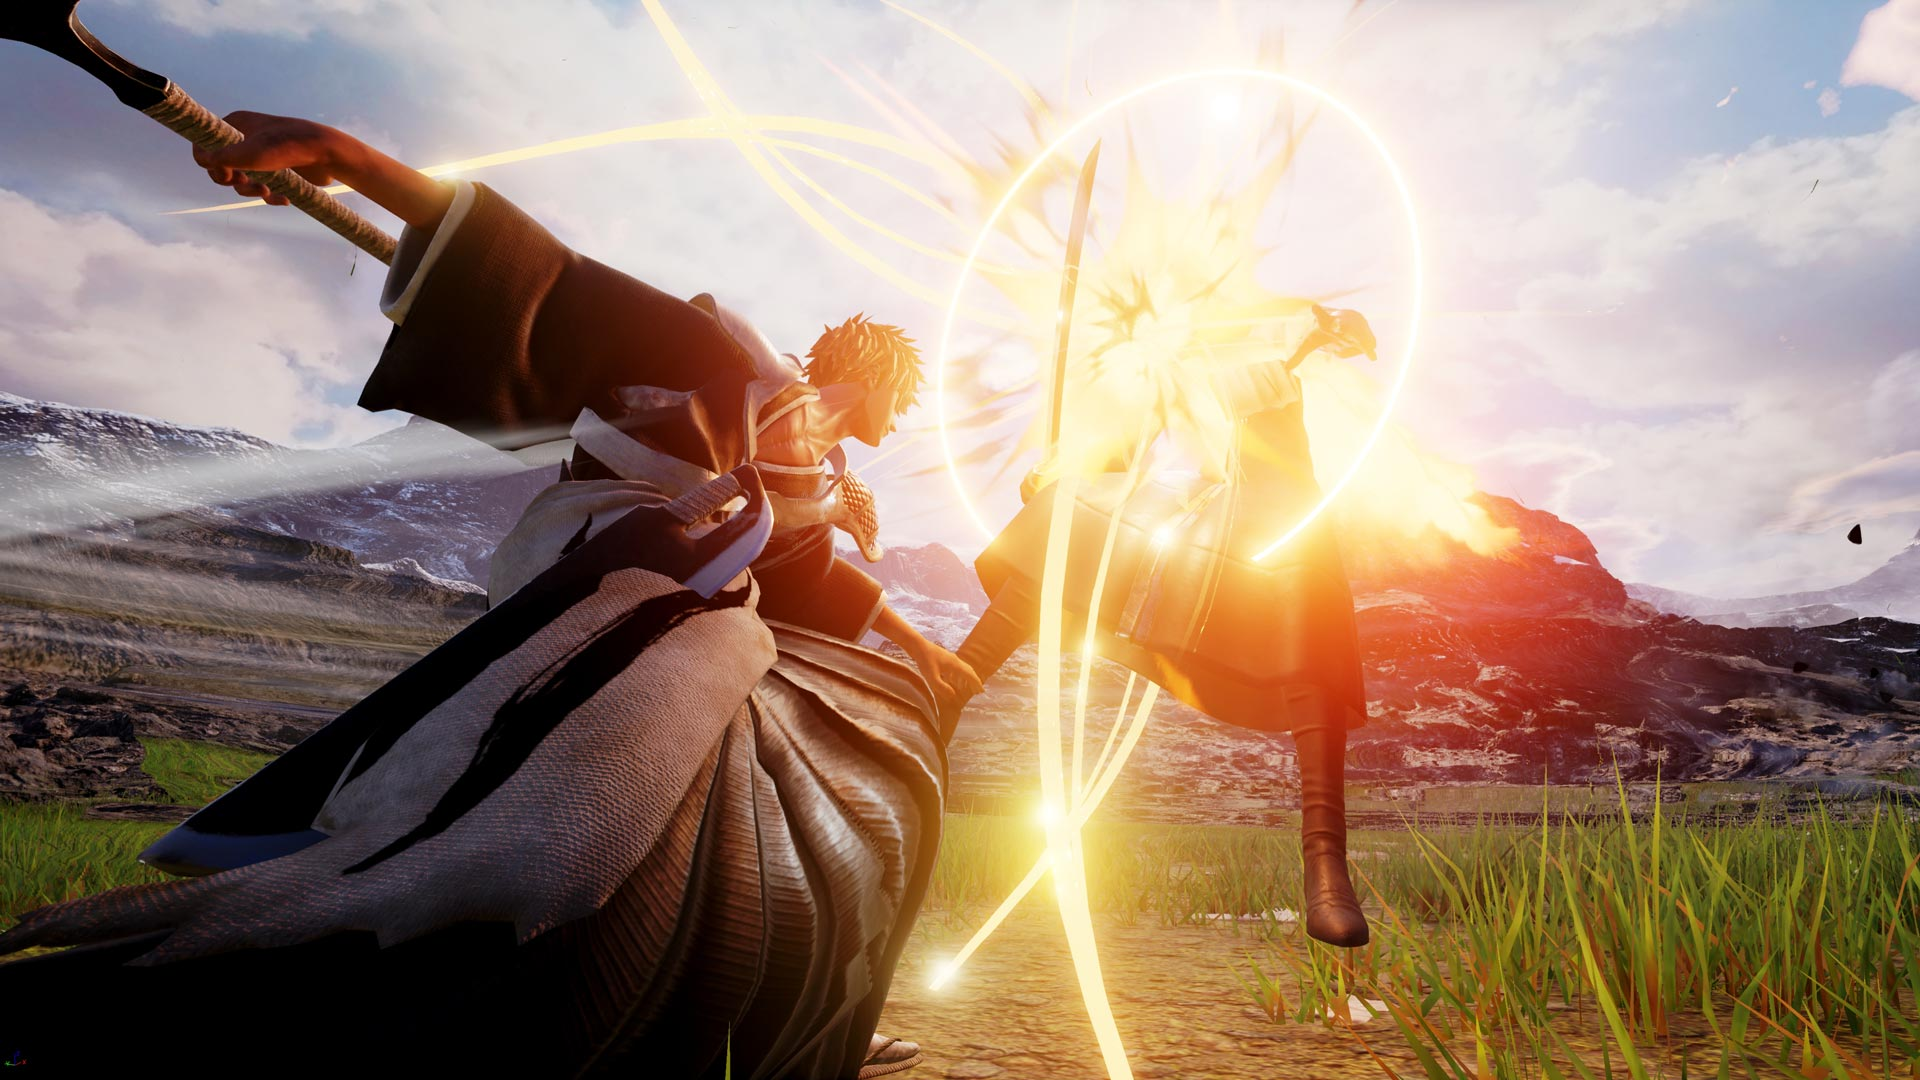 jump force video game photos wallpaper 67120